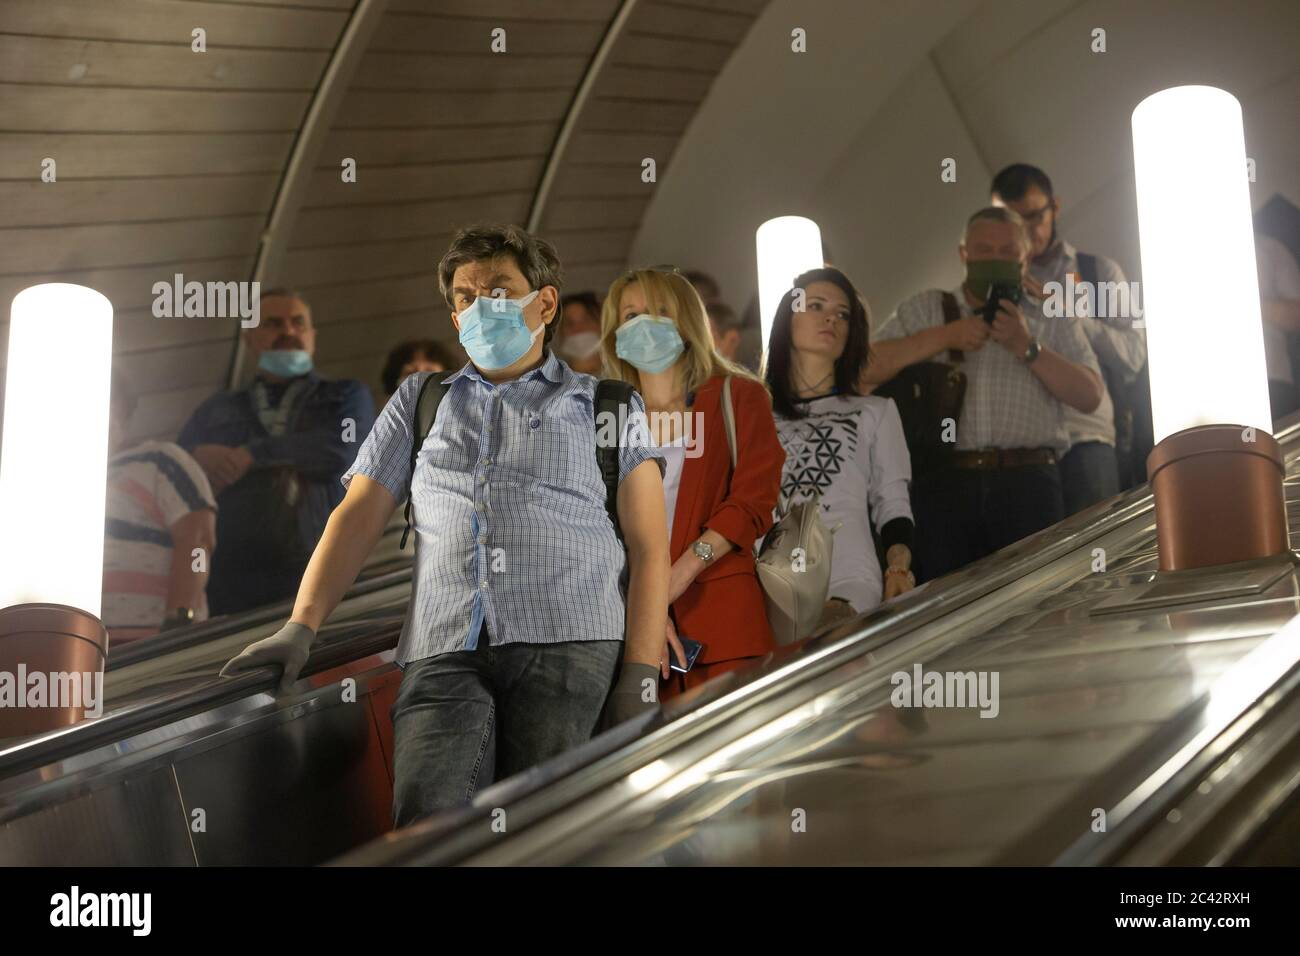 Moscow, Russia. 23rd June, 2020. People wearing face masks ride the escalator at a subway station in Moscow, Russia, on June 23, 2020. Russia recorded 7,425 COVID-19 cases in the past 24 hours, taking its total to 599,705, the country's coronavirus response center said in a statement Tuesday. Credit: Alexander Zemlianichenko Jr/Xinhua/Alamy Live News Stock Photo